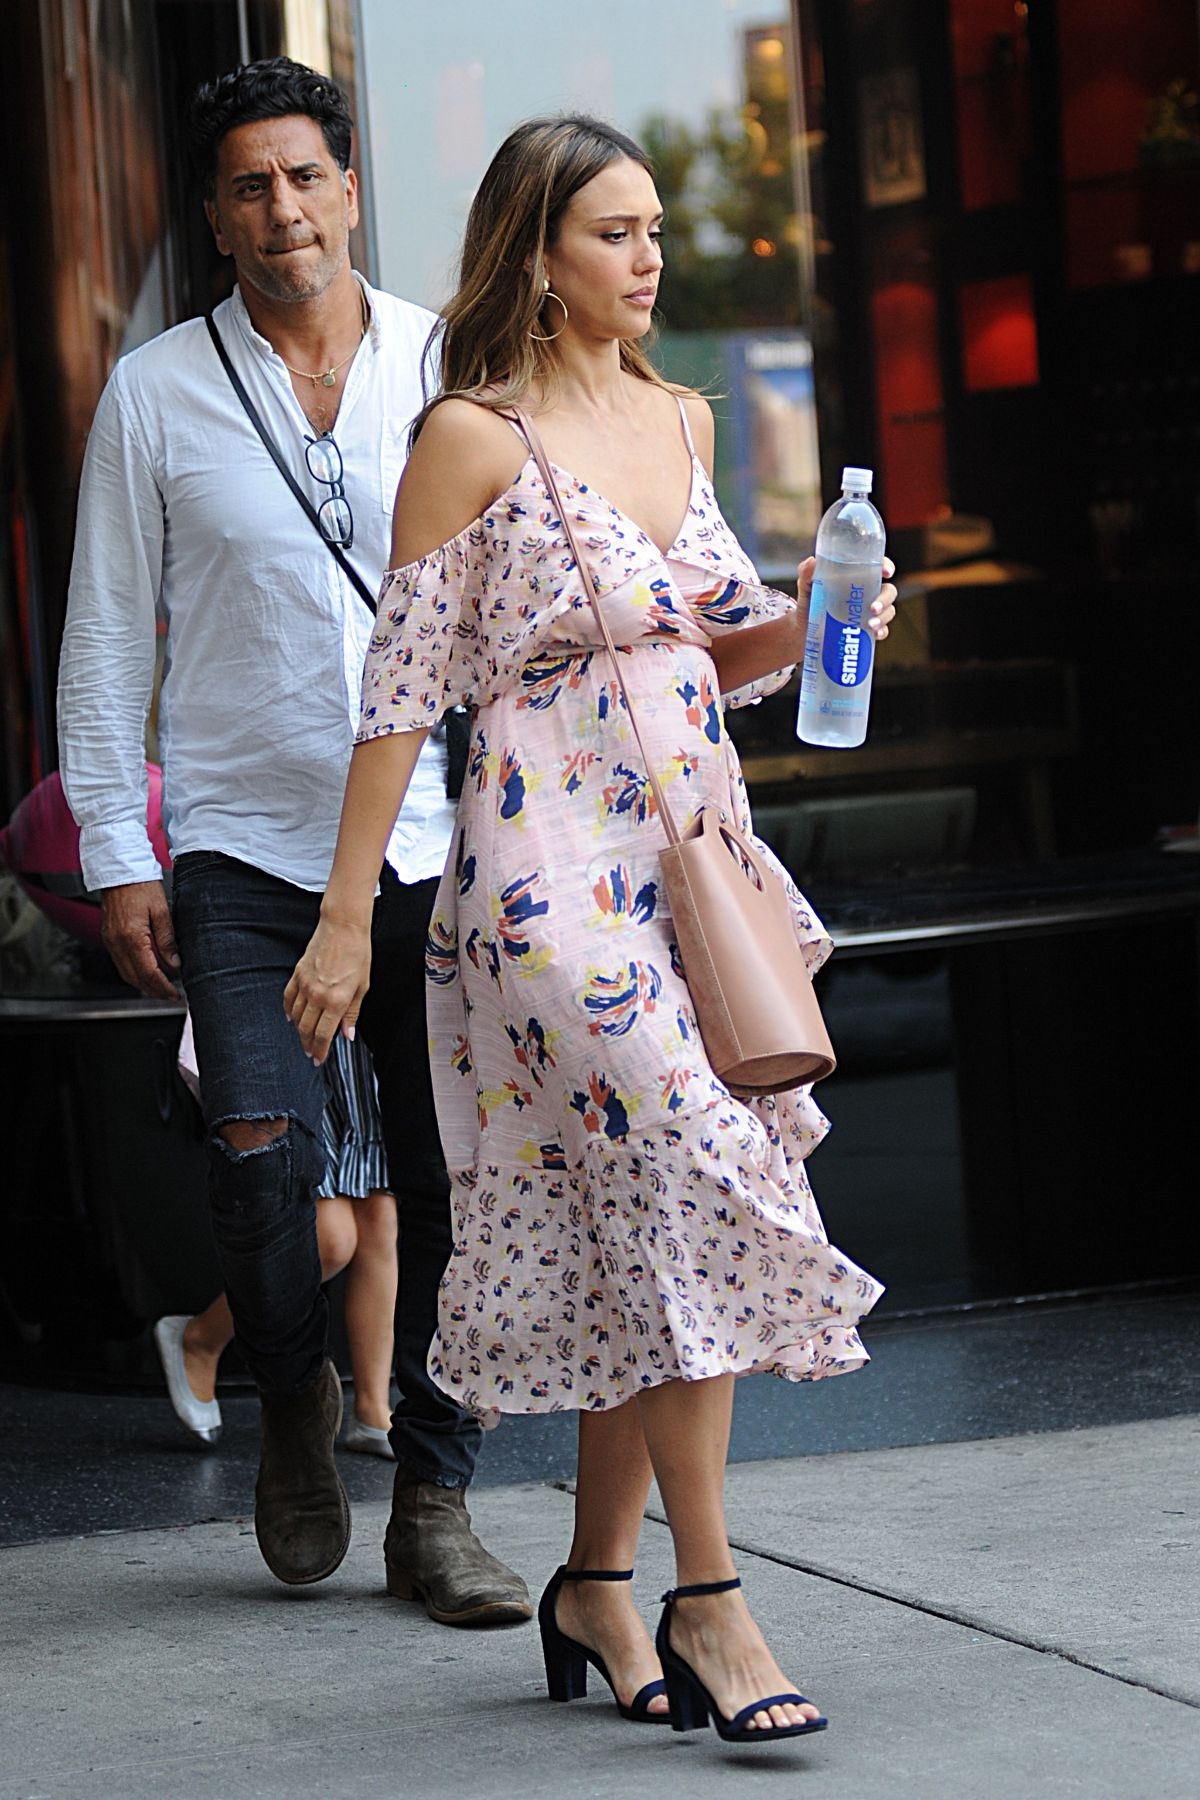 http://www.hawtcelebs.com/wp-content/uploads/2017/08/jessica-alba-out-and-about-in-new-york-08-03-2017_8.jpg